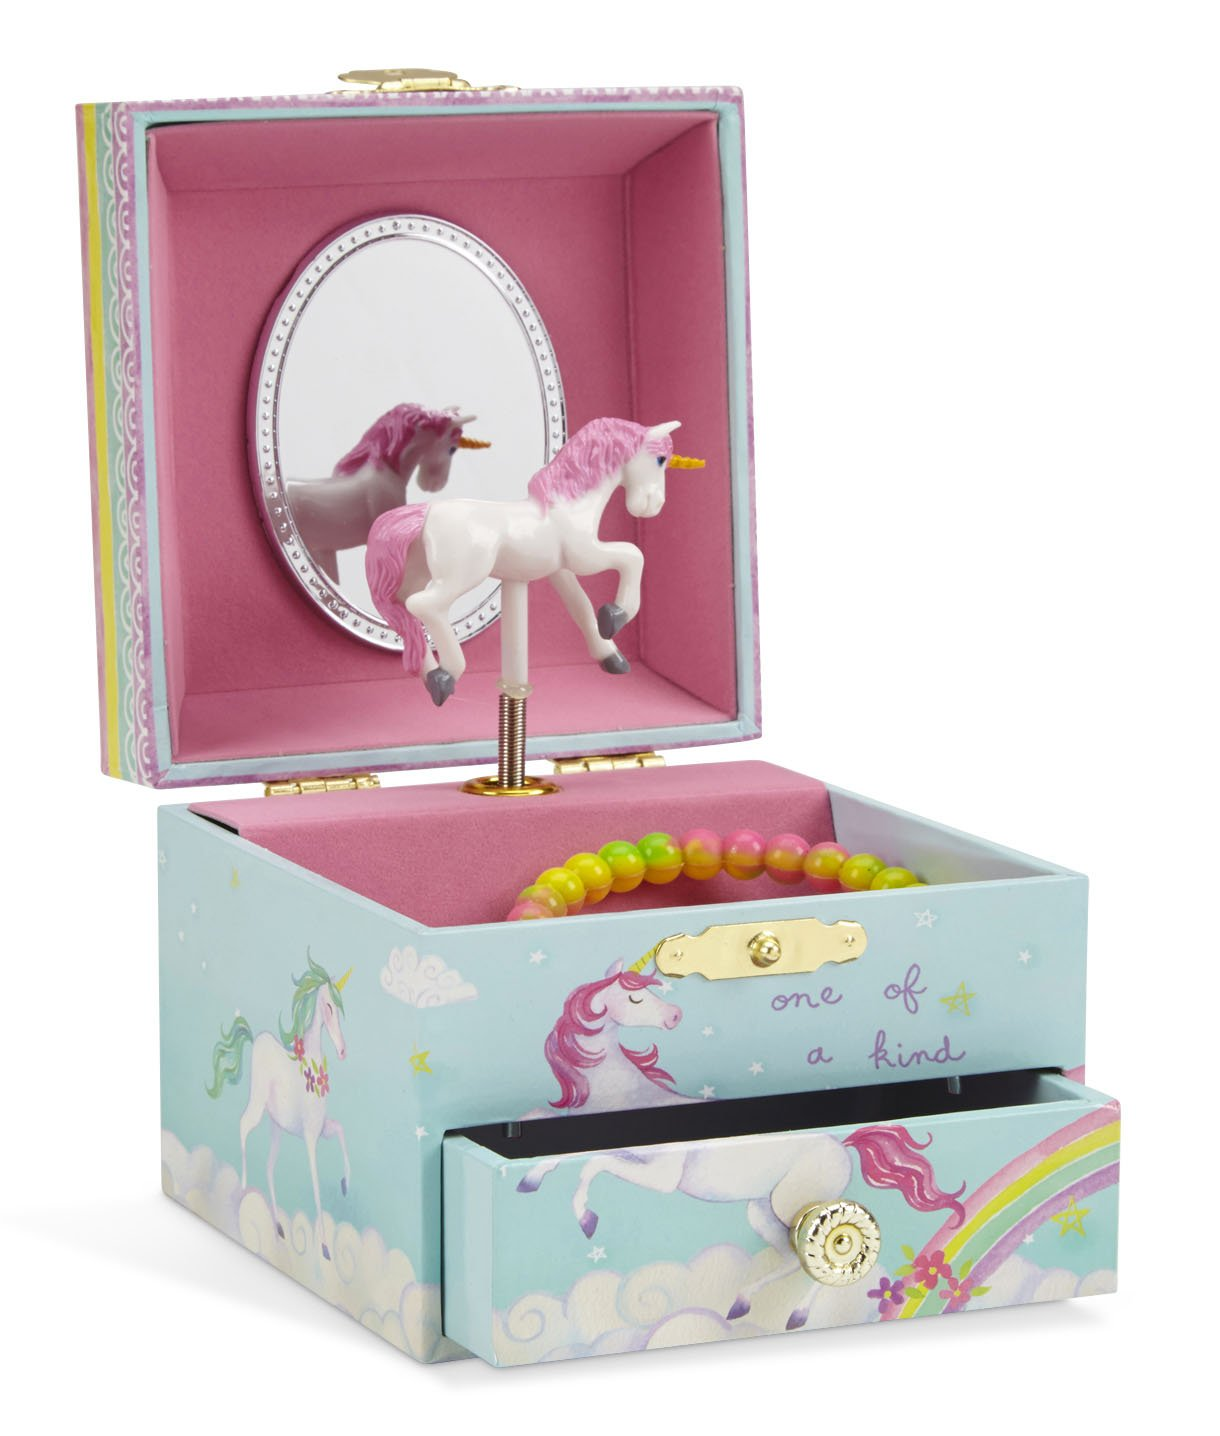 JewelKeeper Musical Ballerina Jewelry Box, Unicorn Rainbow Design with Pullout Drawer, Somewhere Over The Rainbow Tune by JewelKeeper